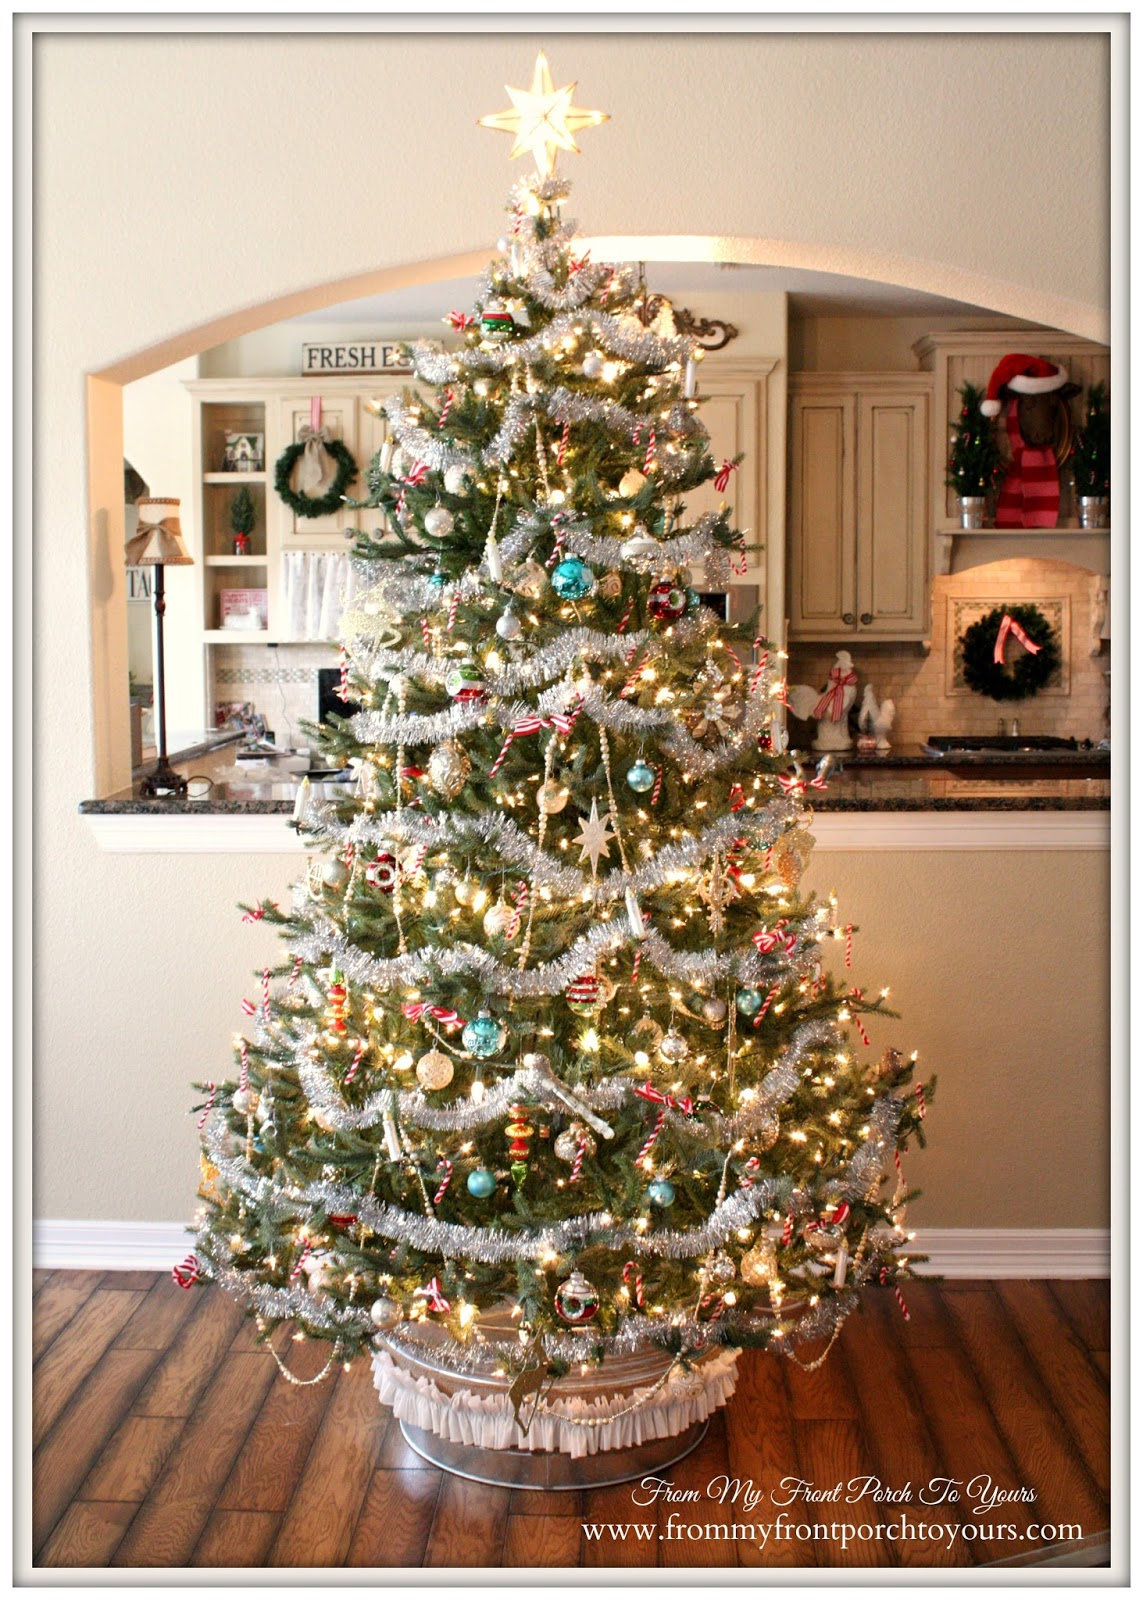 From my front porch to yours farmhouse vintage christmas How to decorate a christmas tree without tinsel